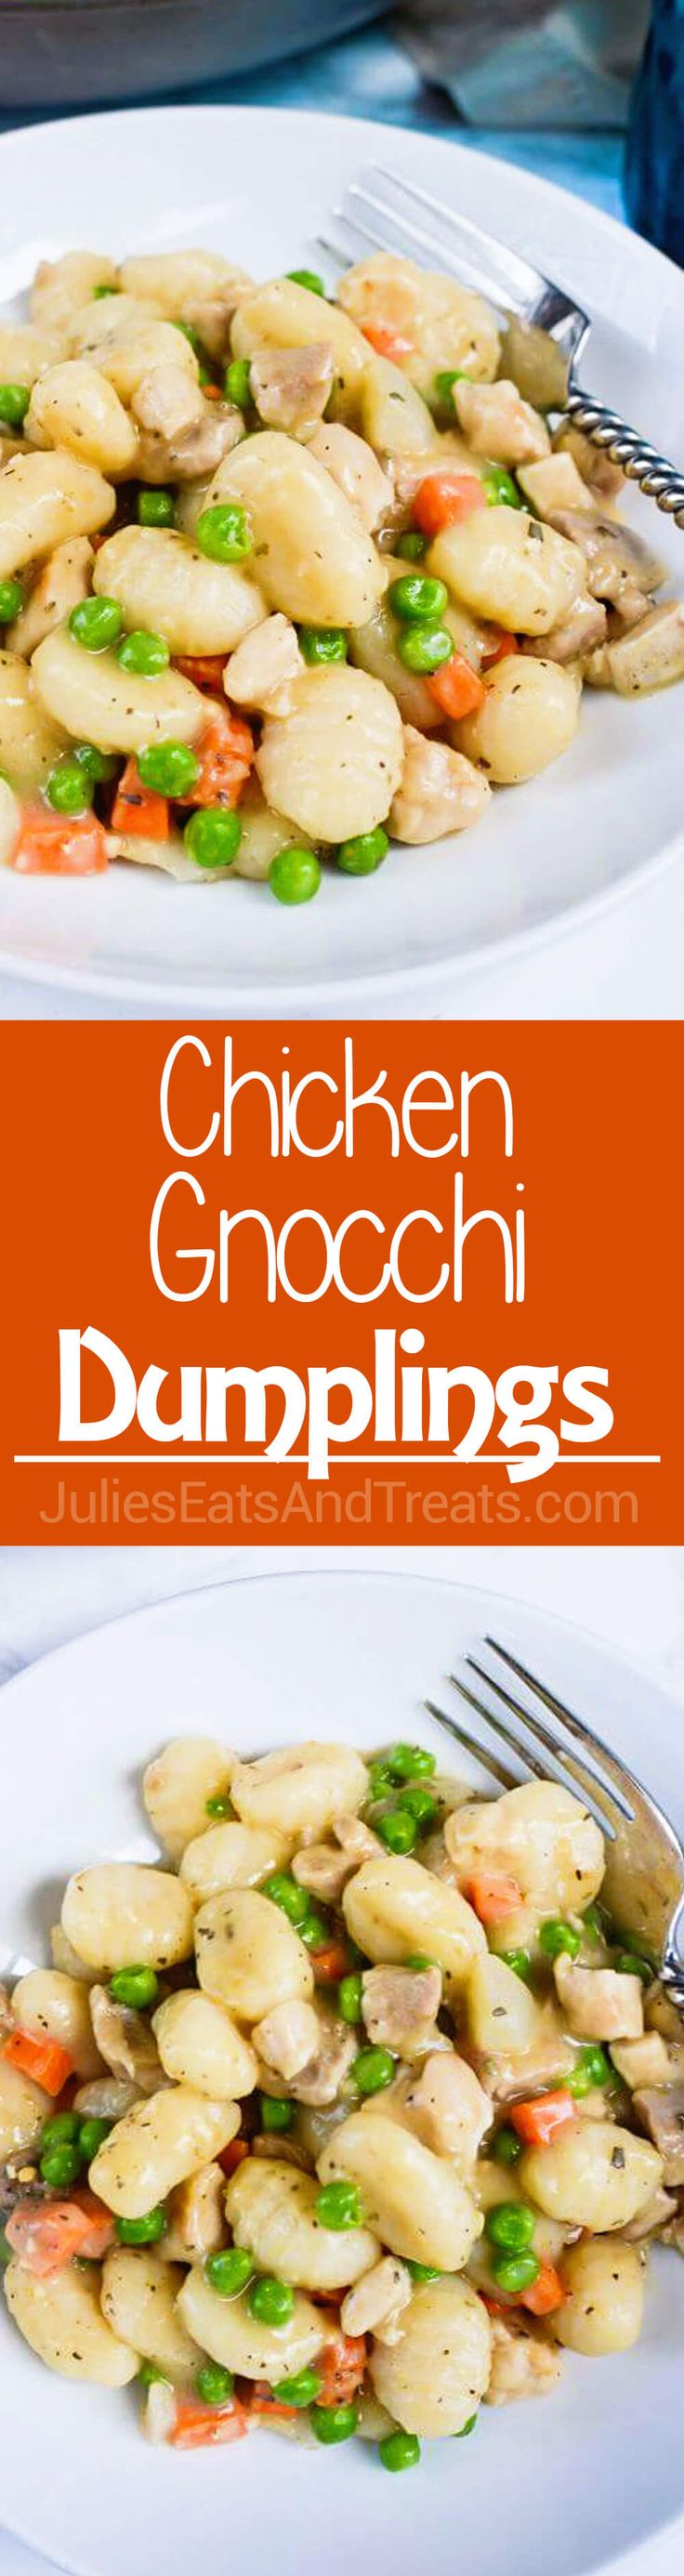 Chicken Gnocchi Dumplings ~ Perfect, Hearty Comfort Food! This Easy, Dinner is Ready in under 30 Minutes and is Loaded with Chicken, Peas, Carrots and More! via @julieseats